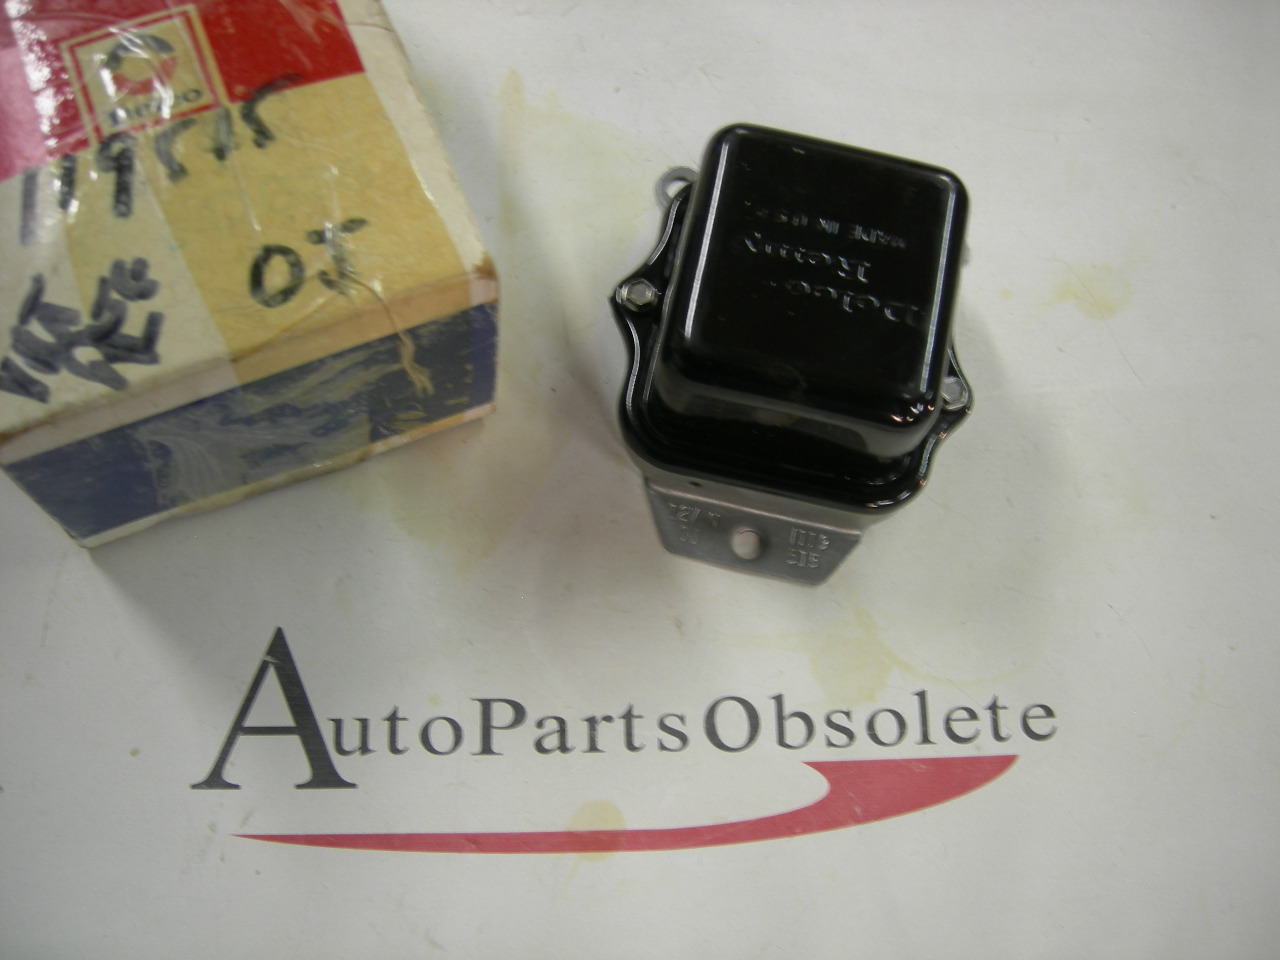 1963 -72 Chevrolet Pontiac Oldsmobile Delco regulator nos 1119515 0J (a 1119515)